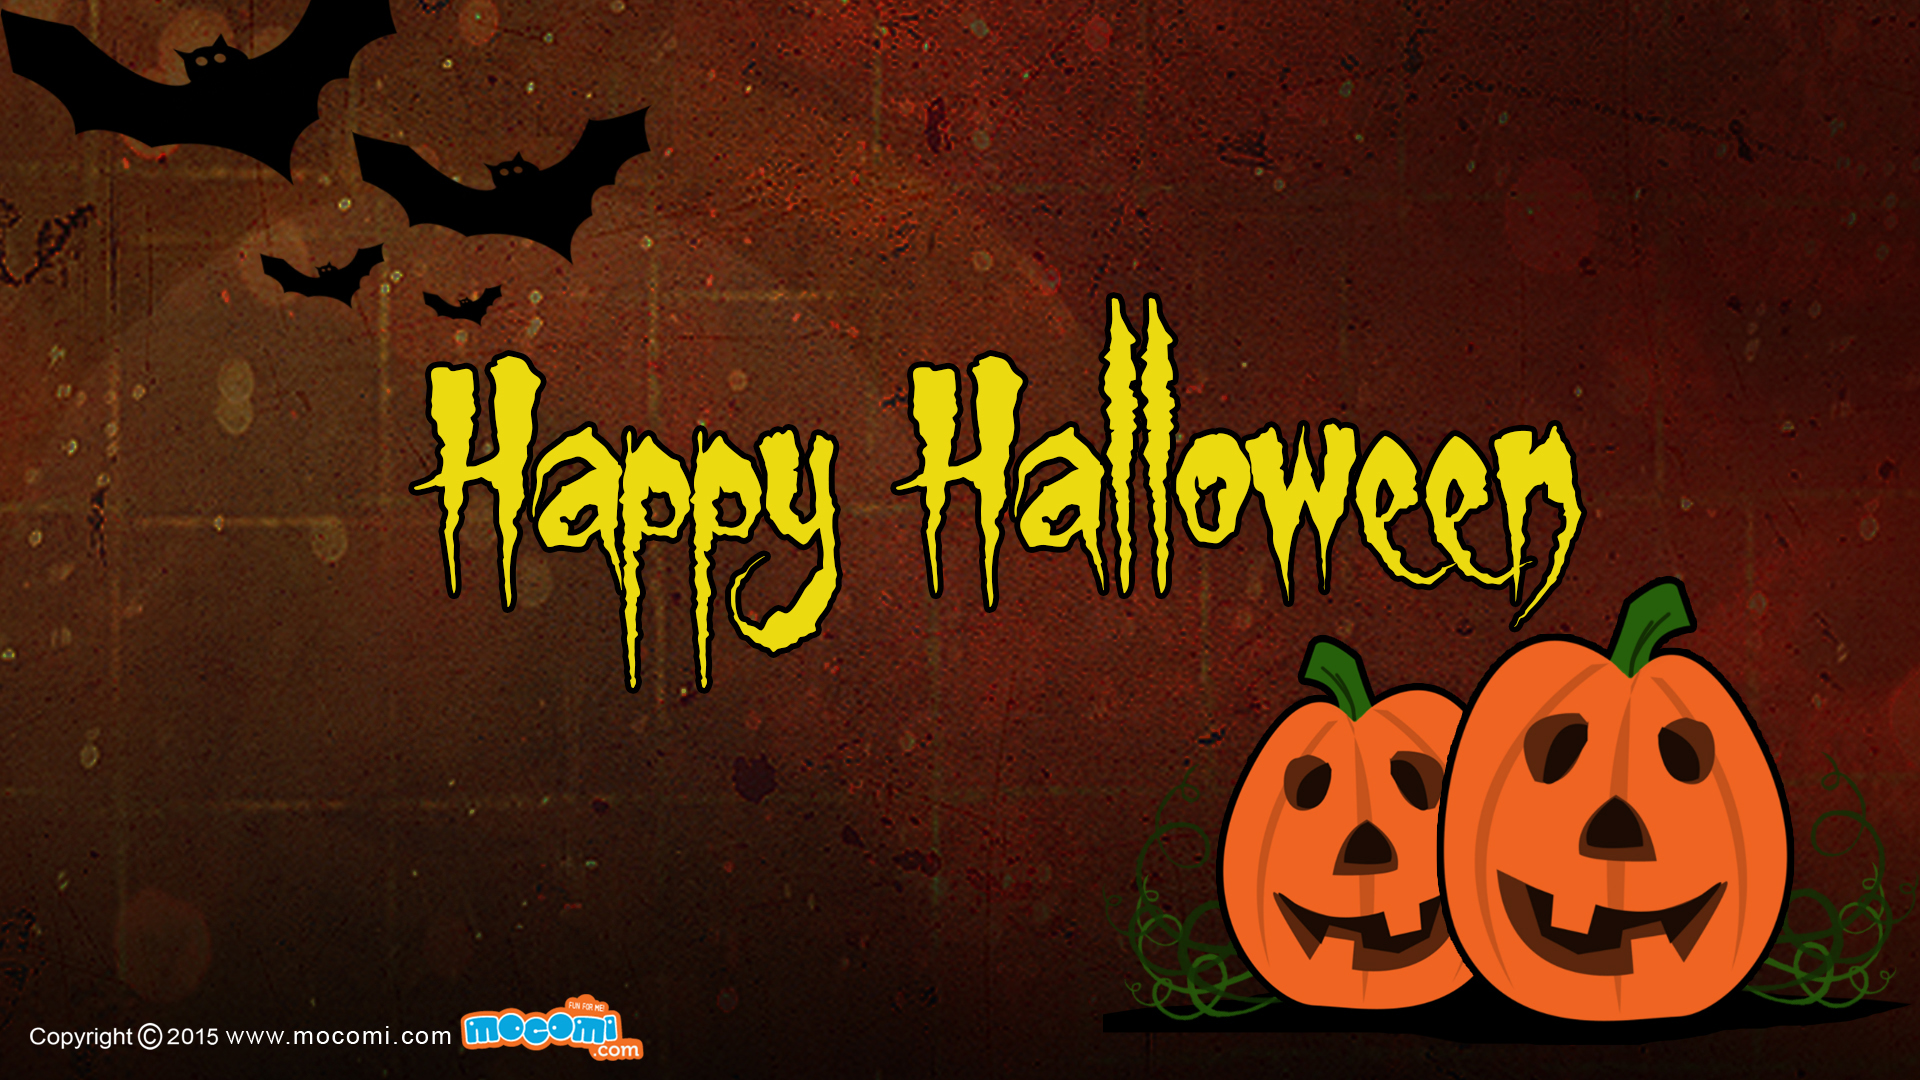 Happy Halloween - 02 - Desktop Wallpaper For Kids